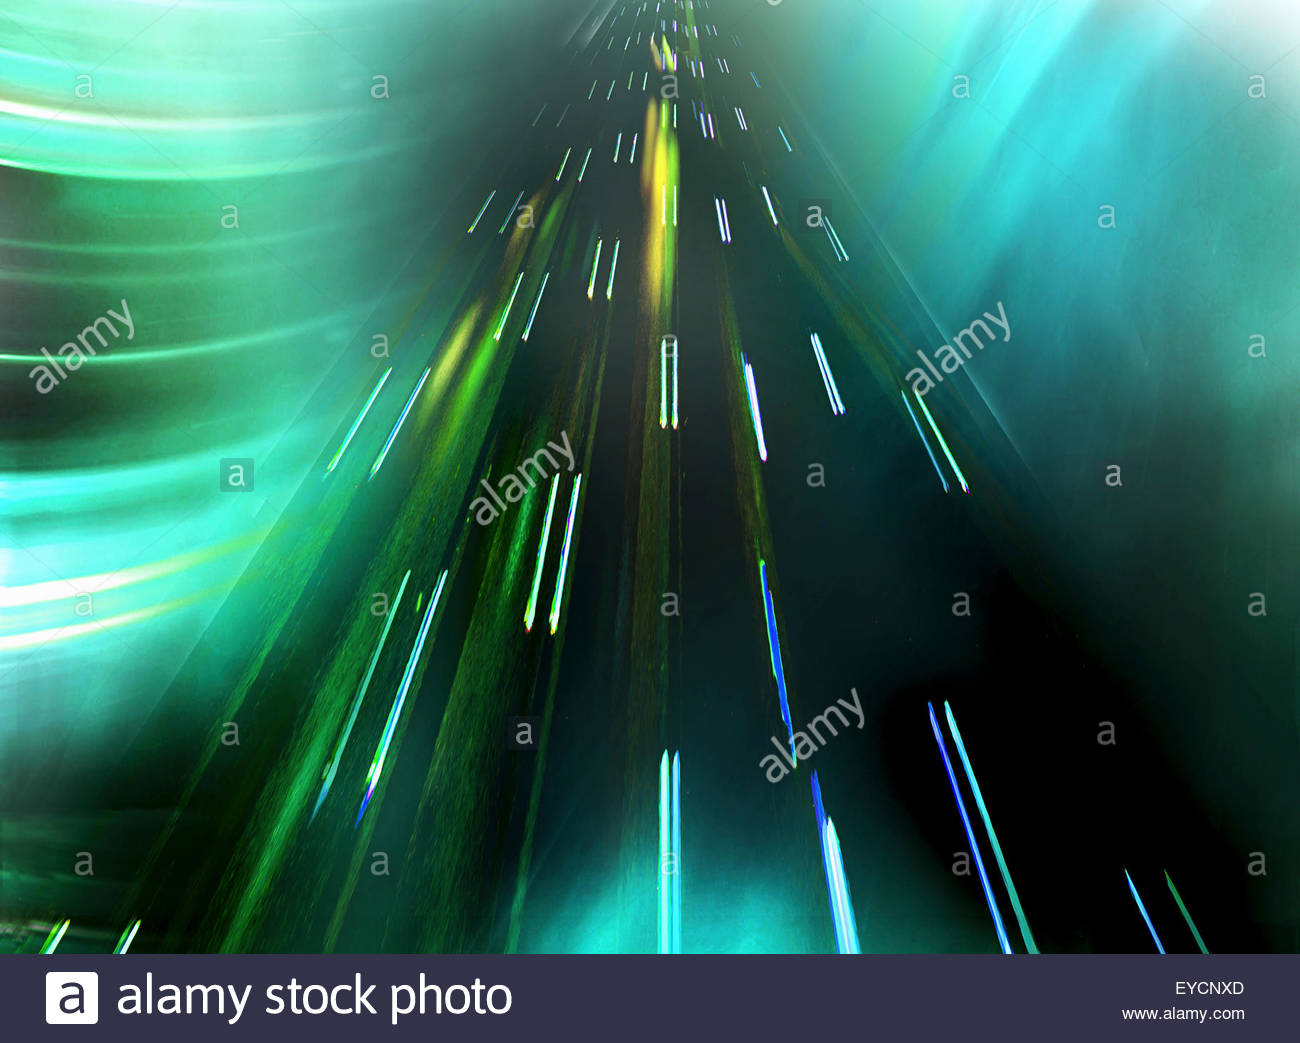 Abstract pattern of light trails moving up - Stock Image